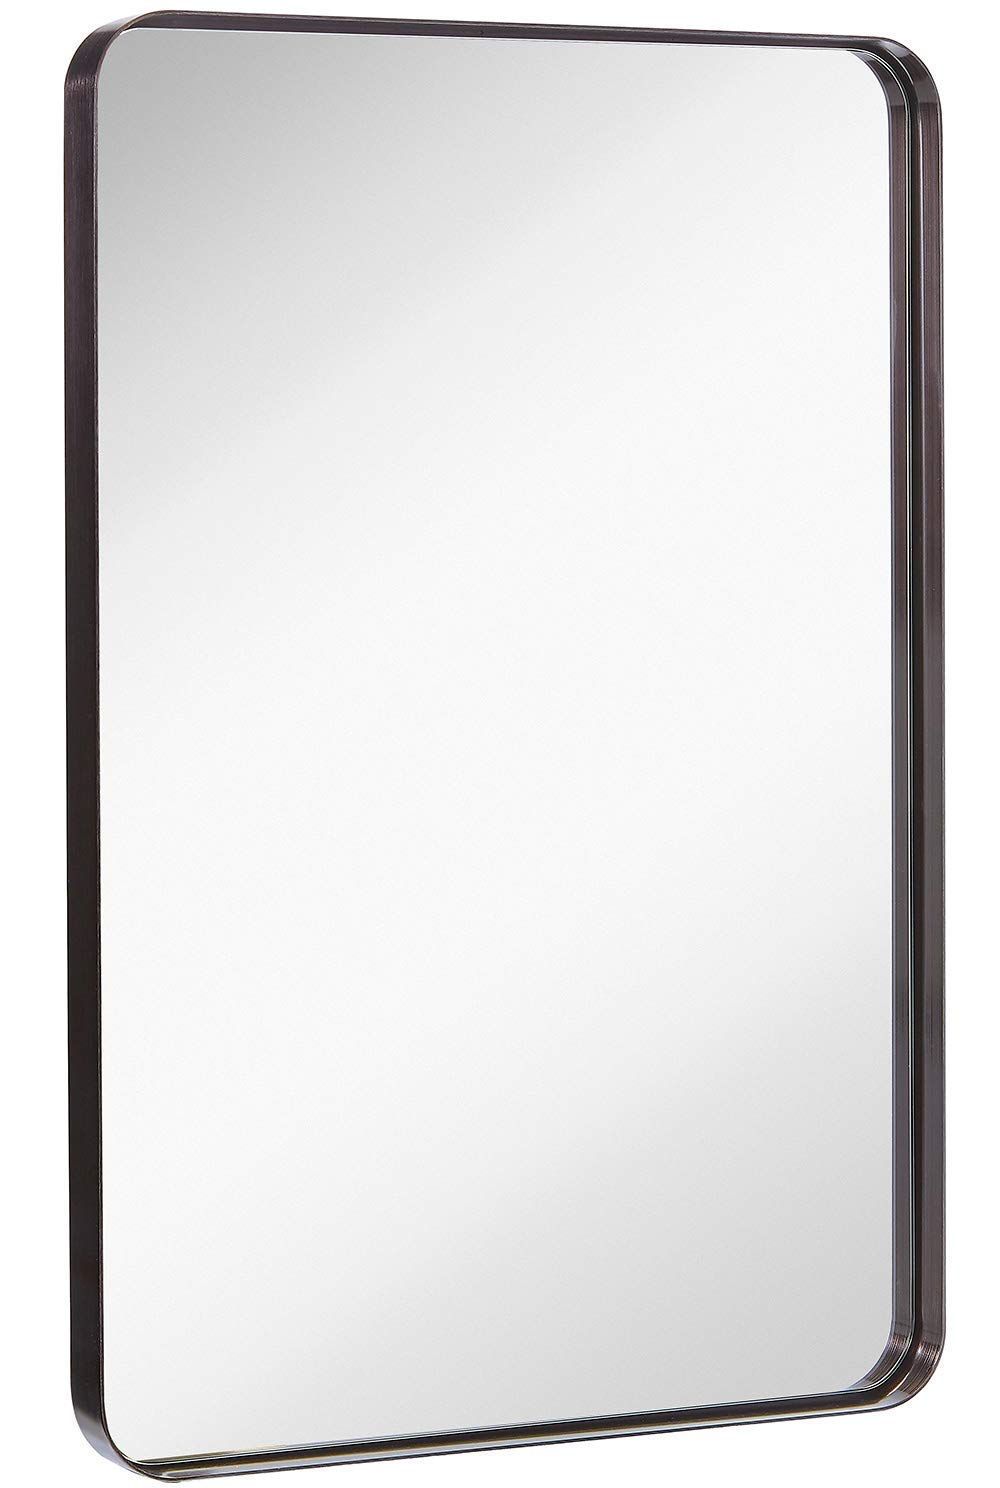 Hamilton Hills Contemporary Brushed Metal Wall Mirror | Glass Panel Black Framed Rounded Corner Deep Set Design | Mirrored Rectangle Hangs Horizontal or Vertical (24'' x 36'')